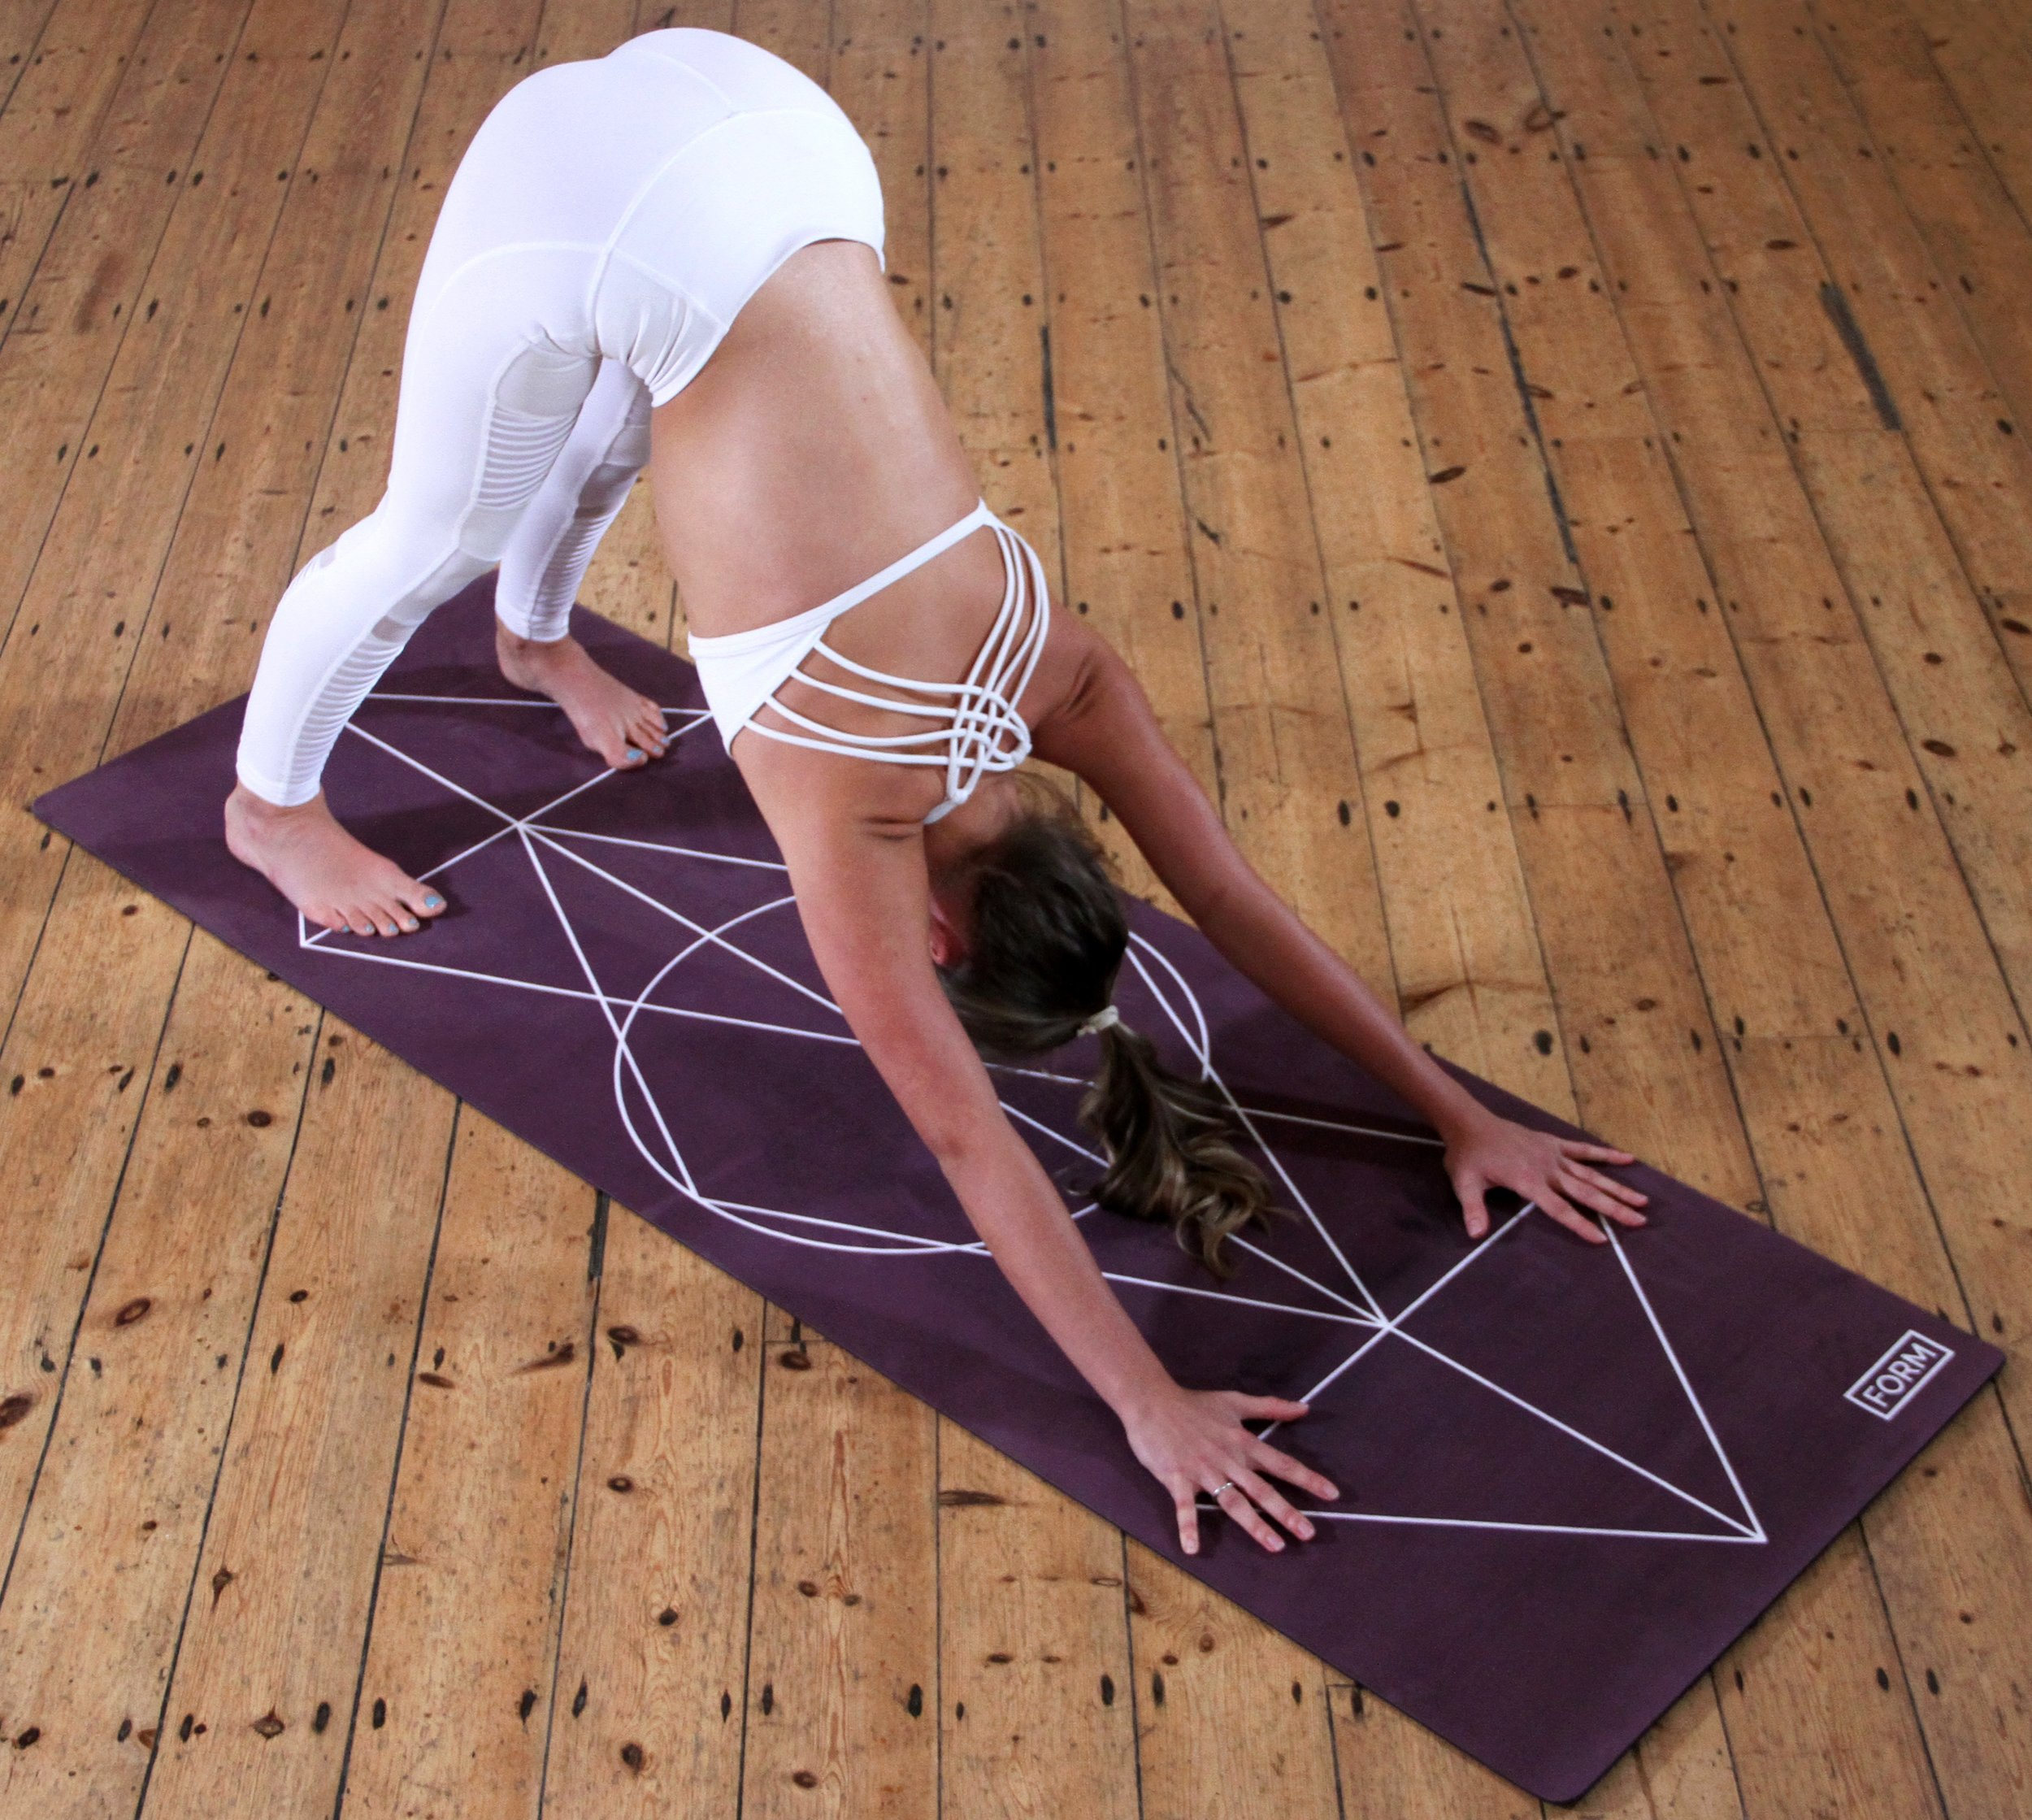 yoga-mat-recycling-ideas